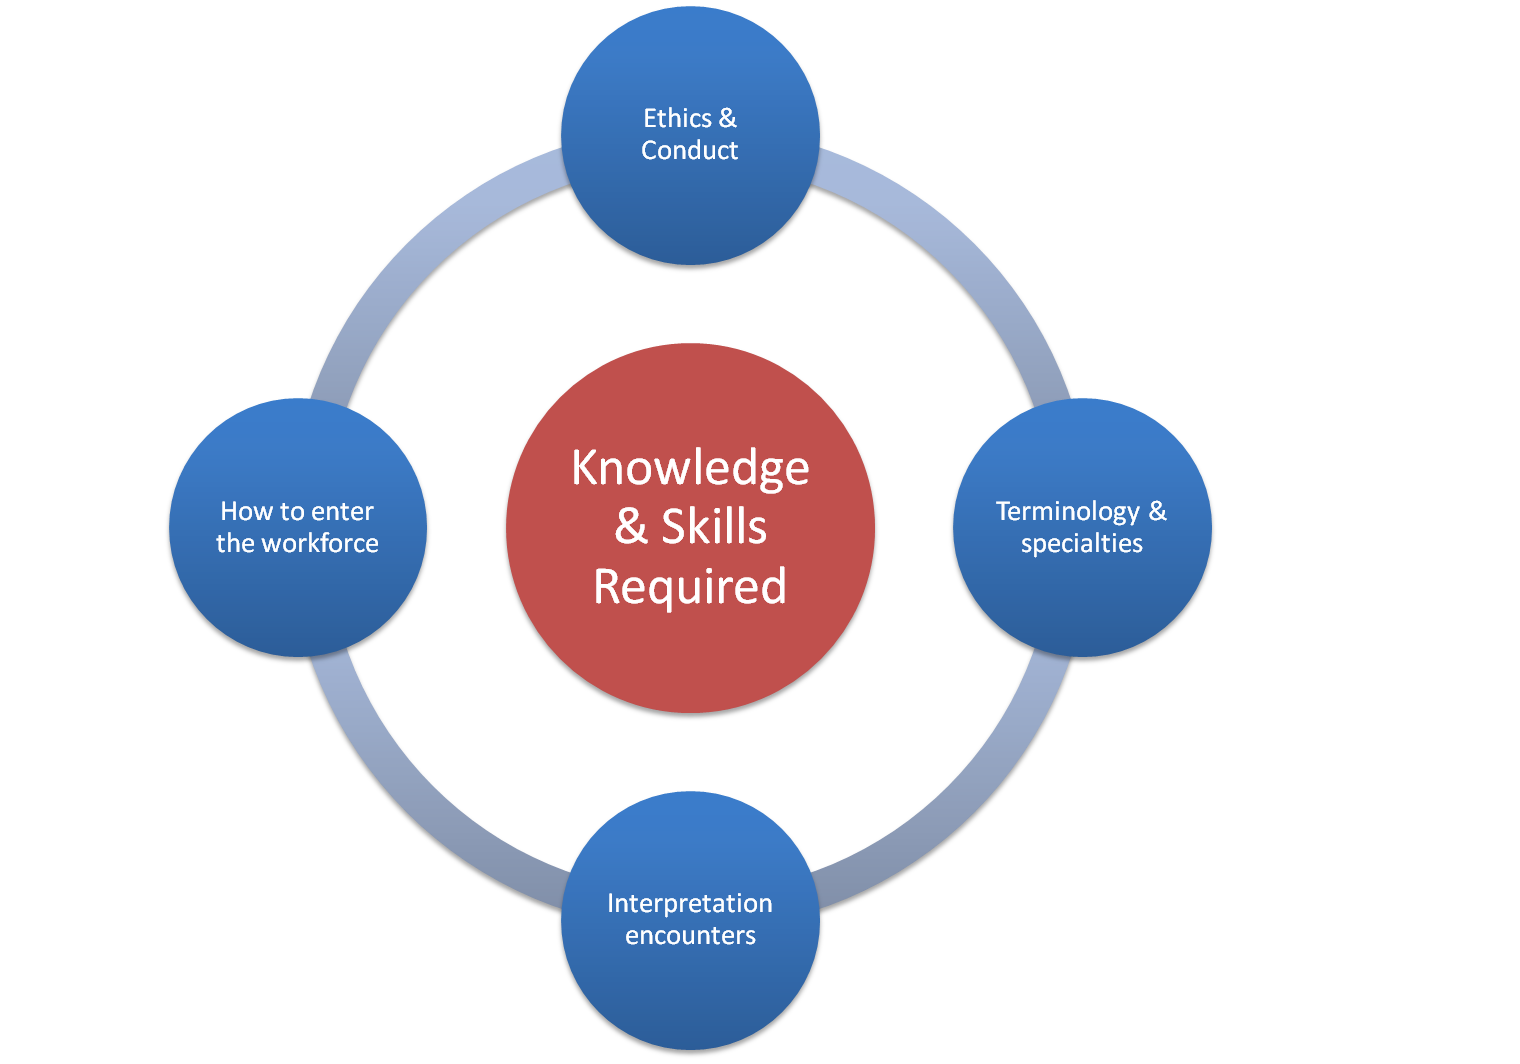 Knowledge and Skills req